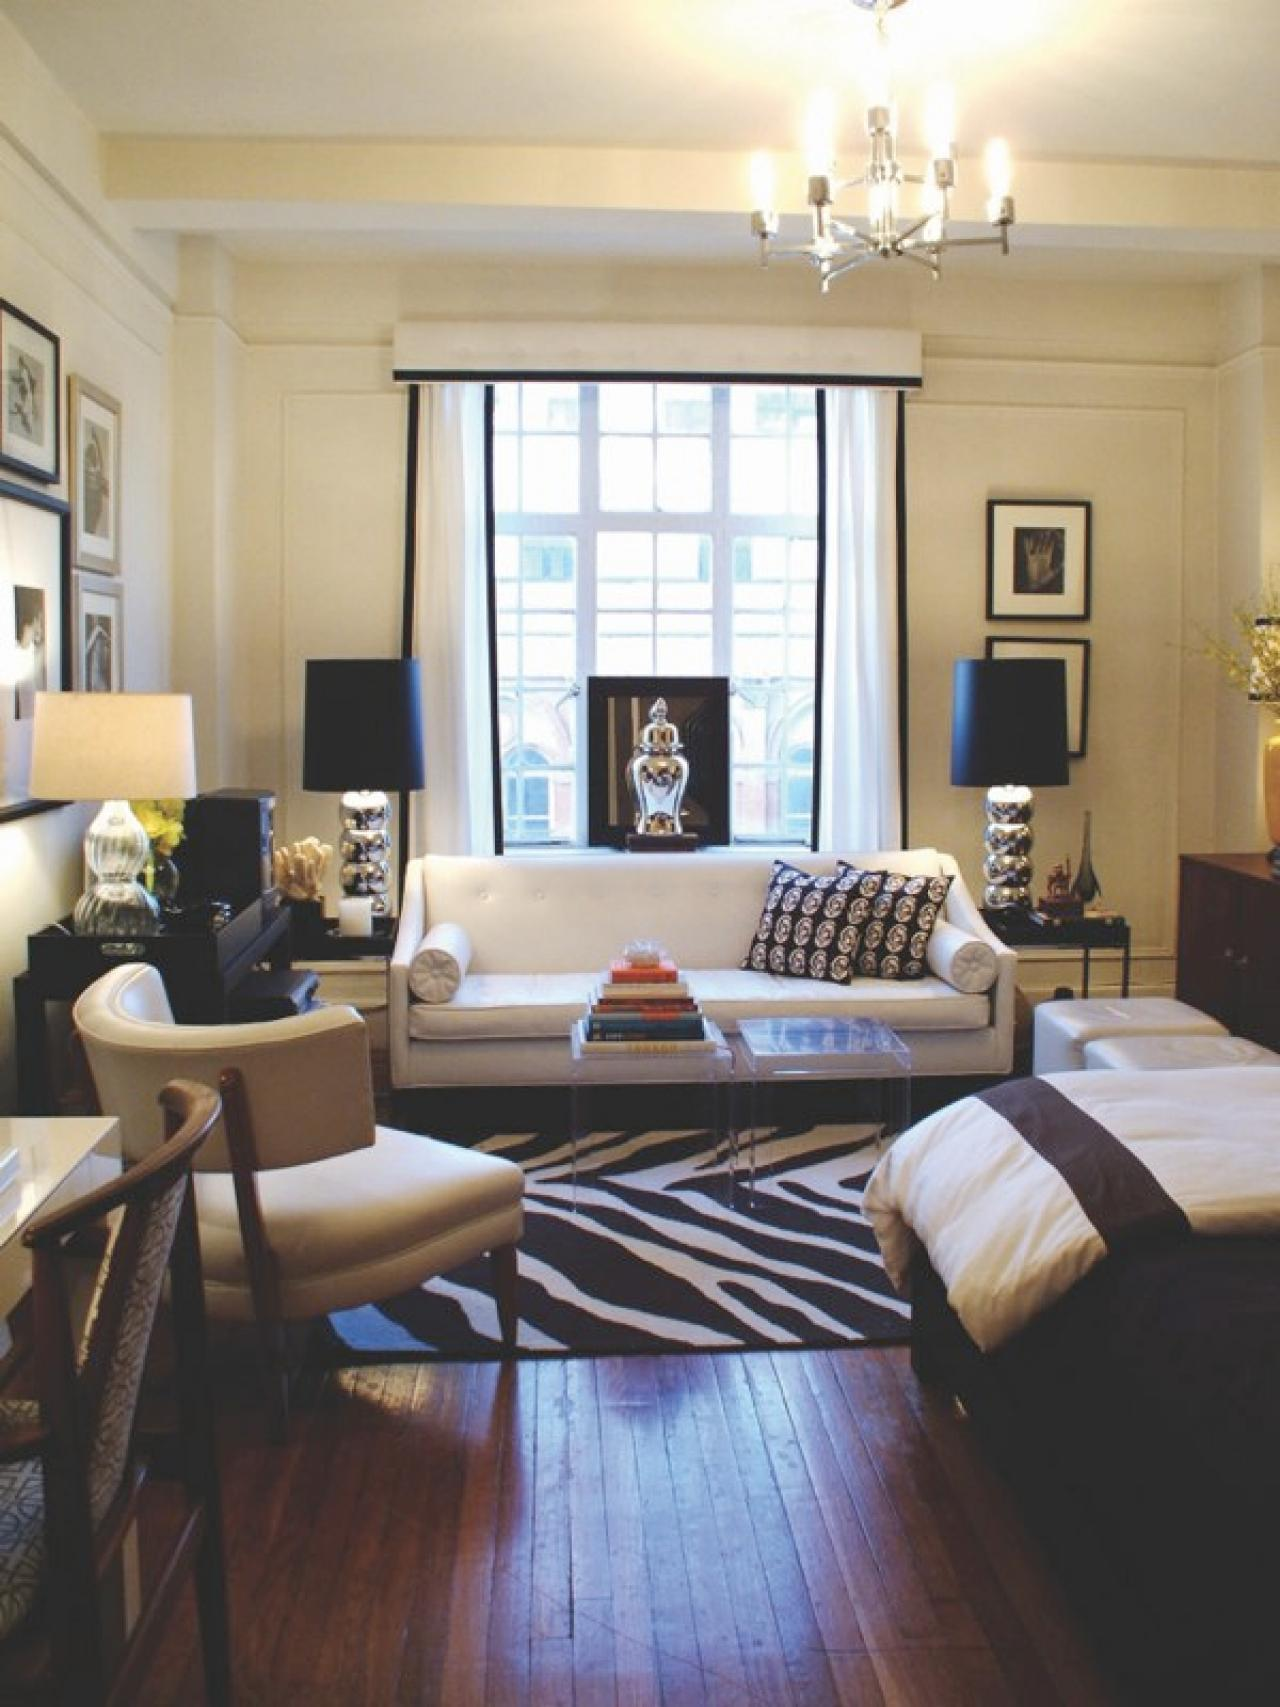 4 ways to decorate your flat with smart home technology